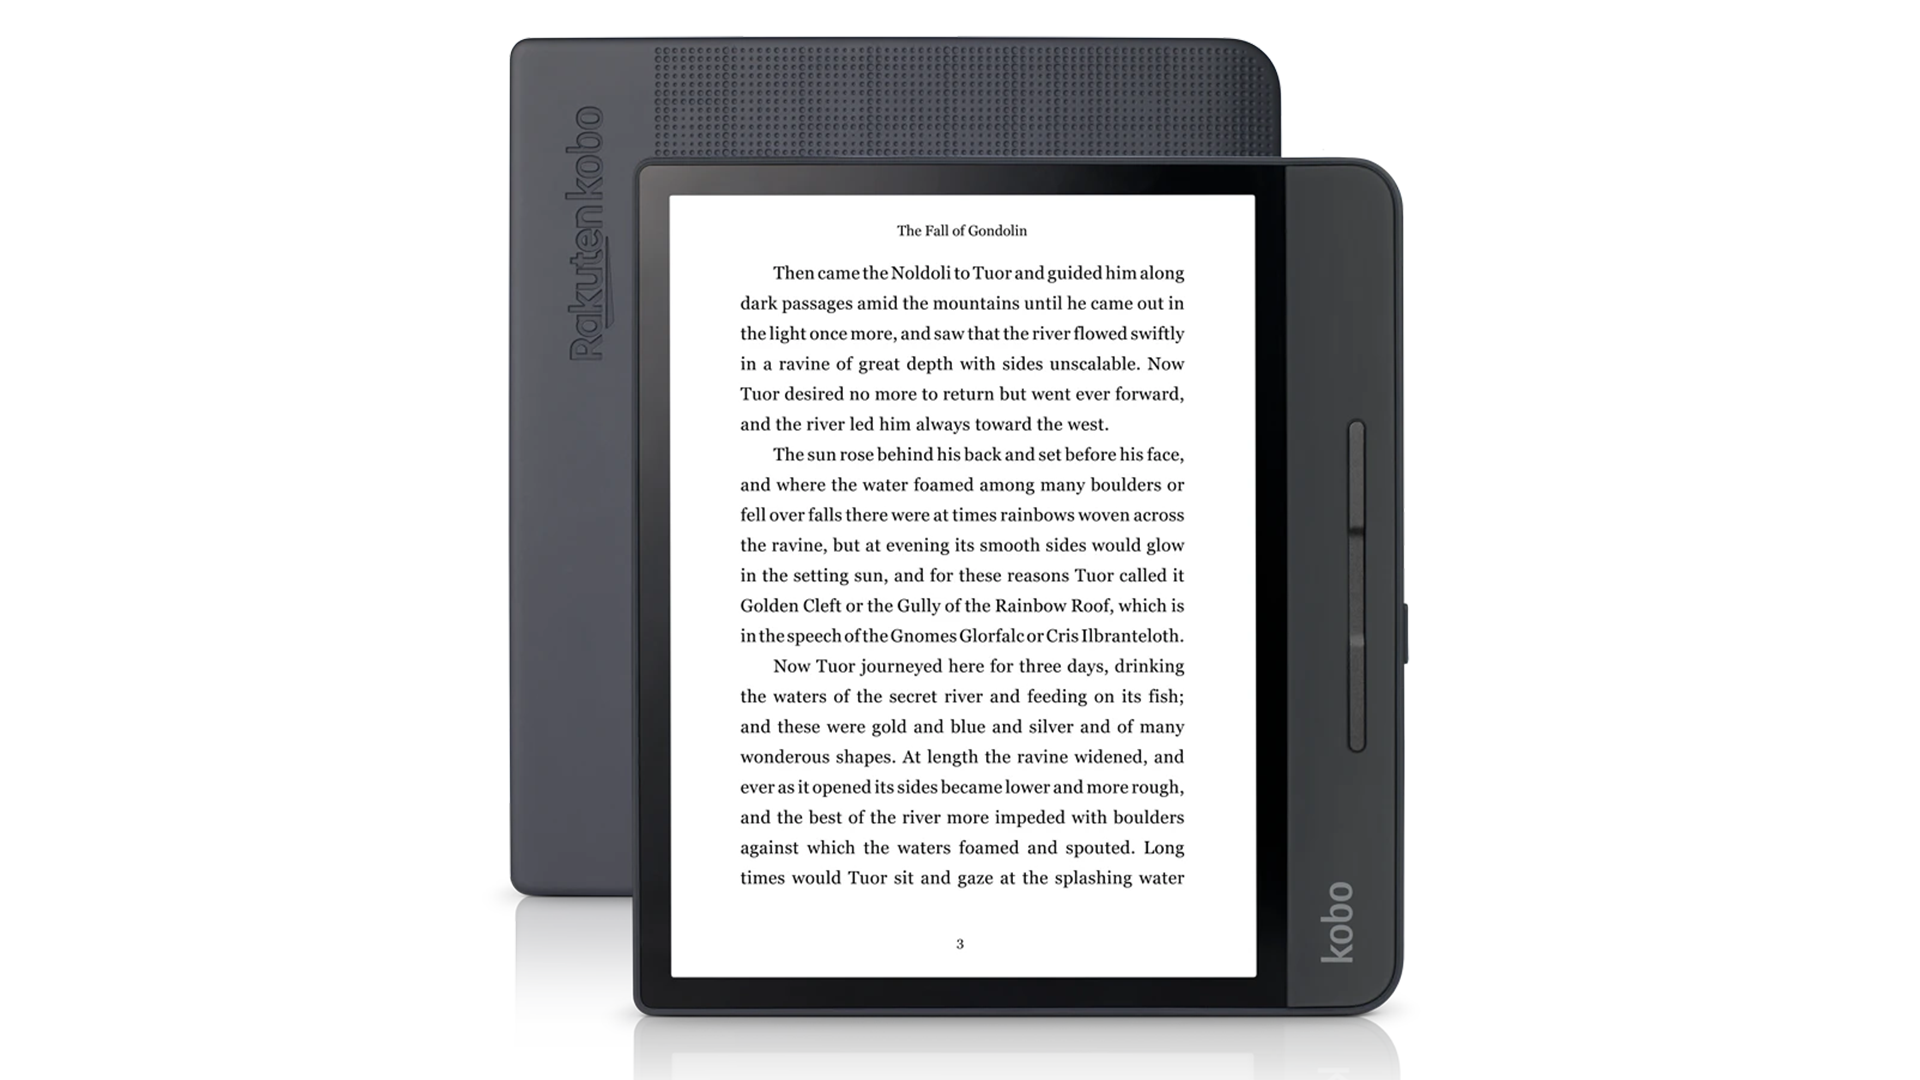 A photo of the Kobo Forma